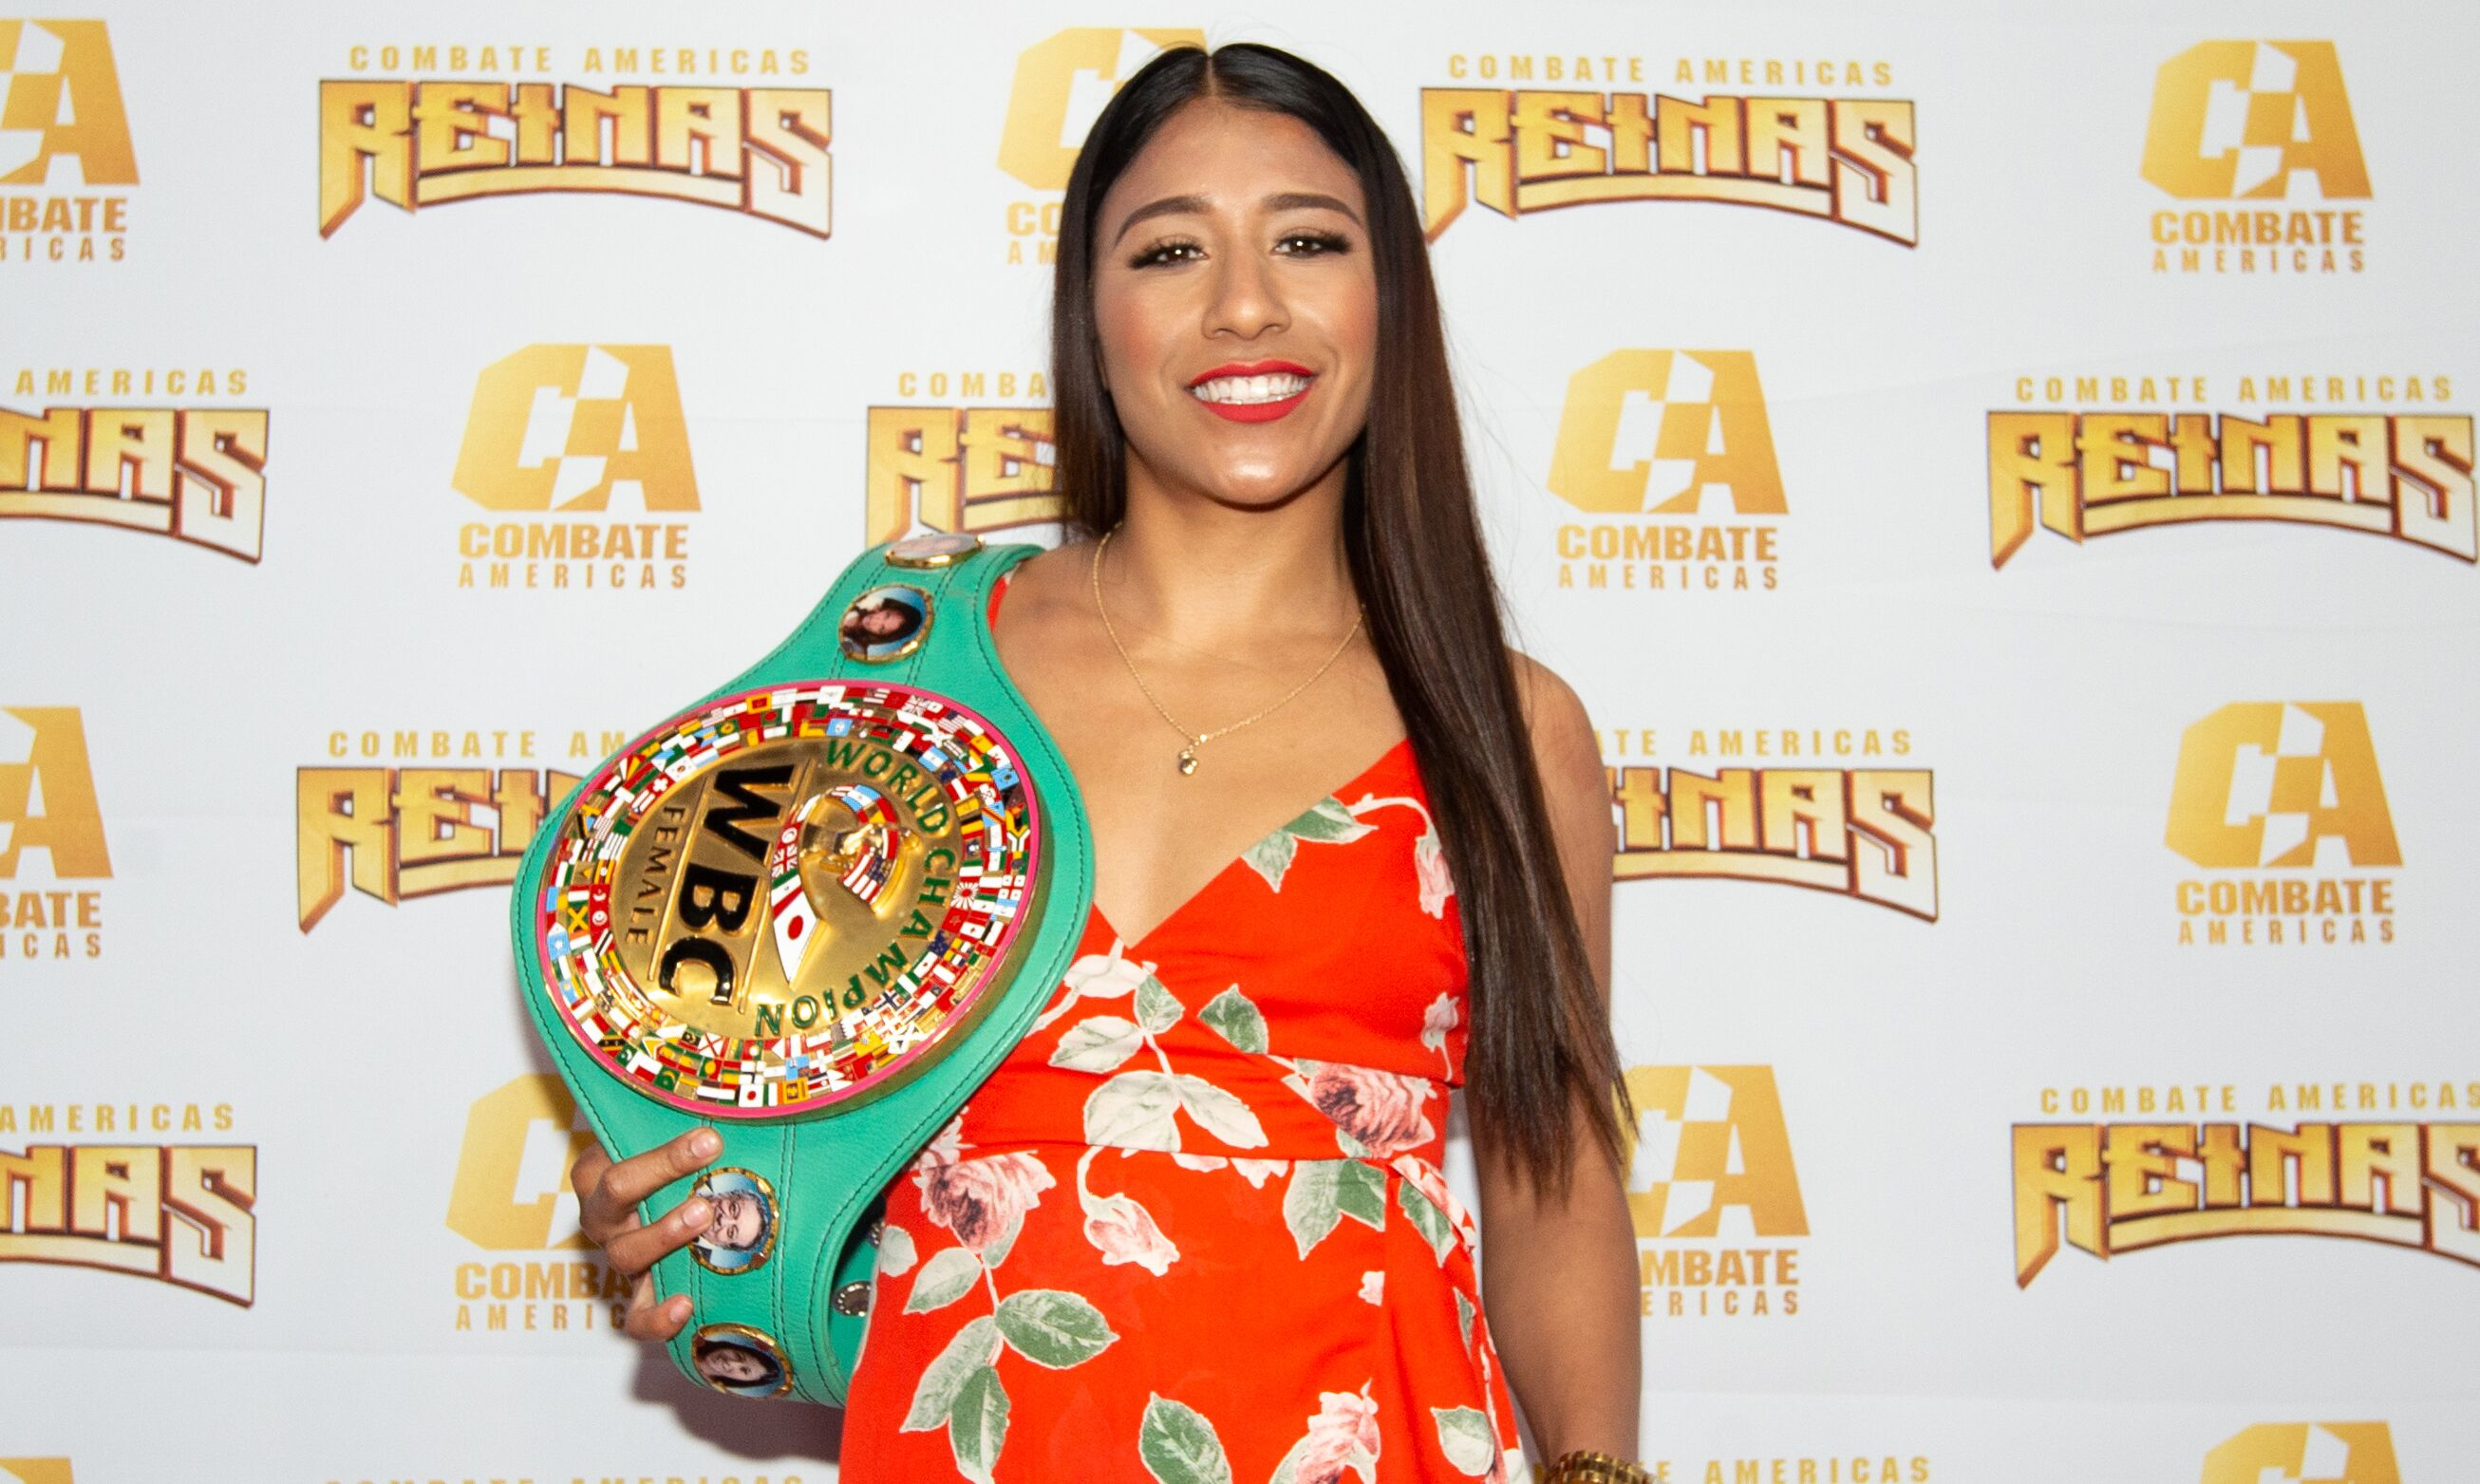 Boxing champ Kenia Enriquez signs with Combate Americas for MMA debut